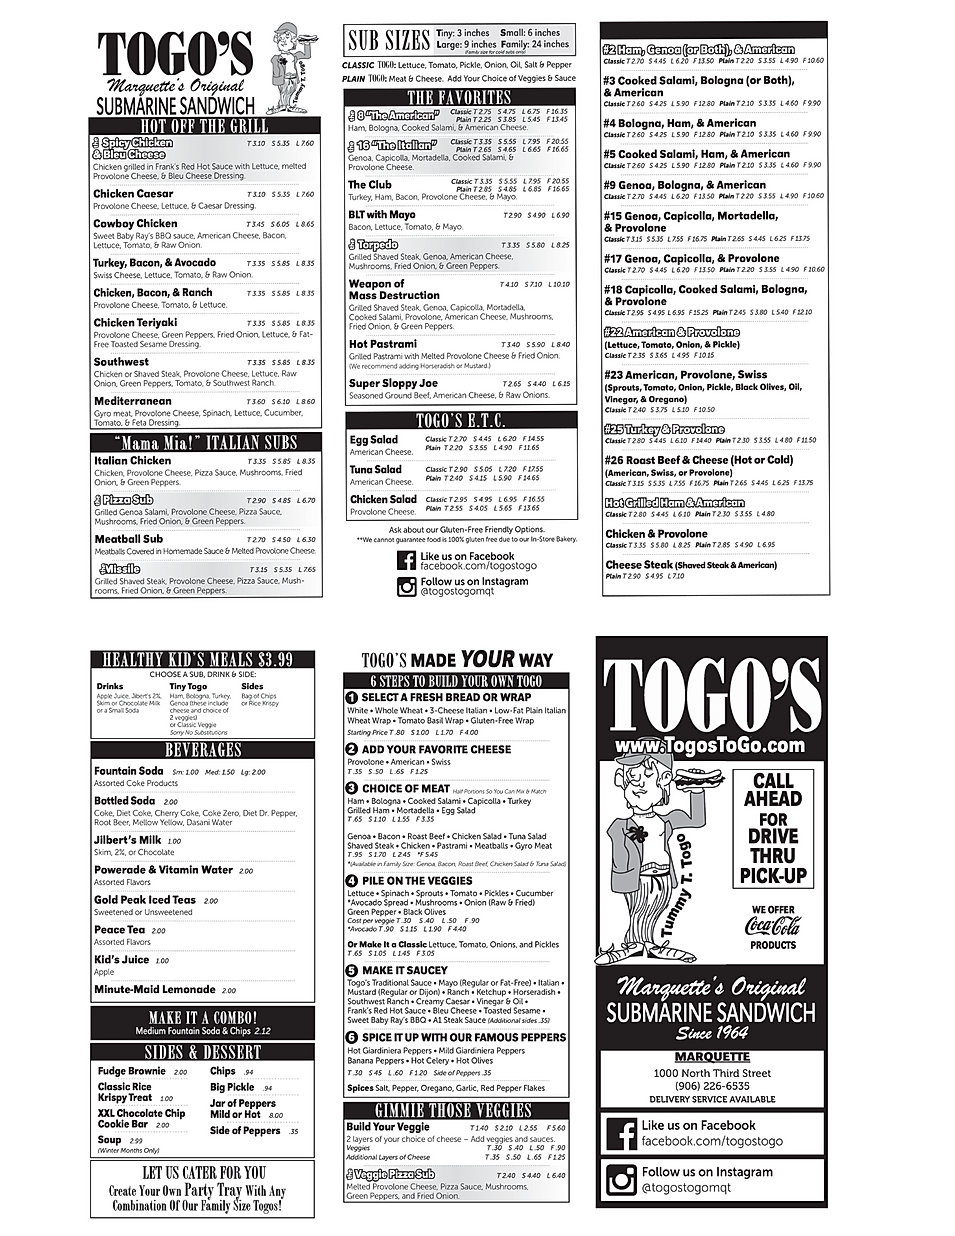 Togo's Submarine Sandwich restaurant menu delivery take out hours location deals Marquette Now